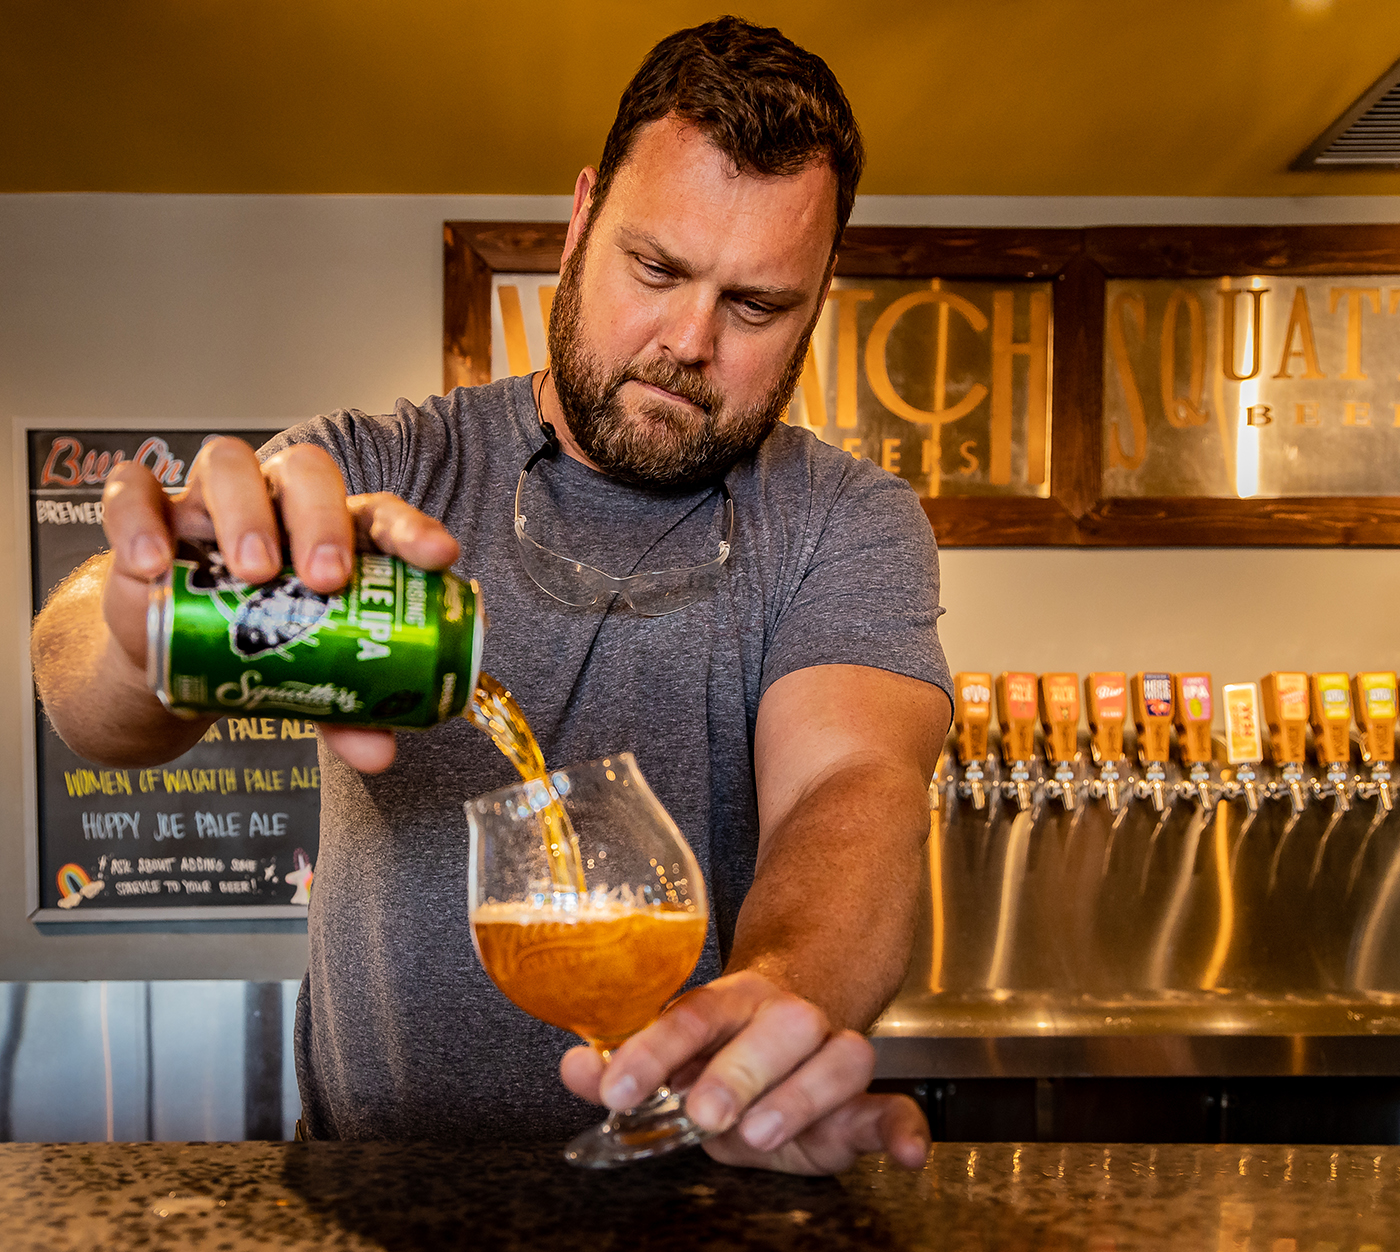 Squatters Operations Director Adam Curfew was the Head Cellarman when the brewery's Hop Rising Double IPA was conceived, and has found solace in the brew ever since.